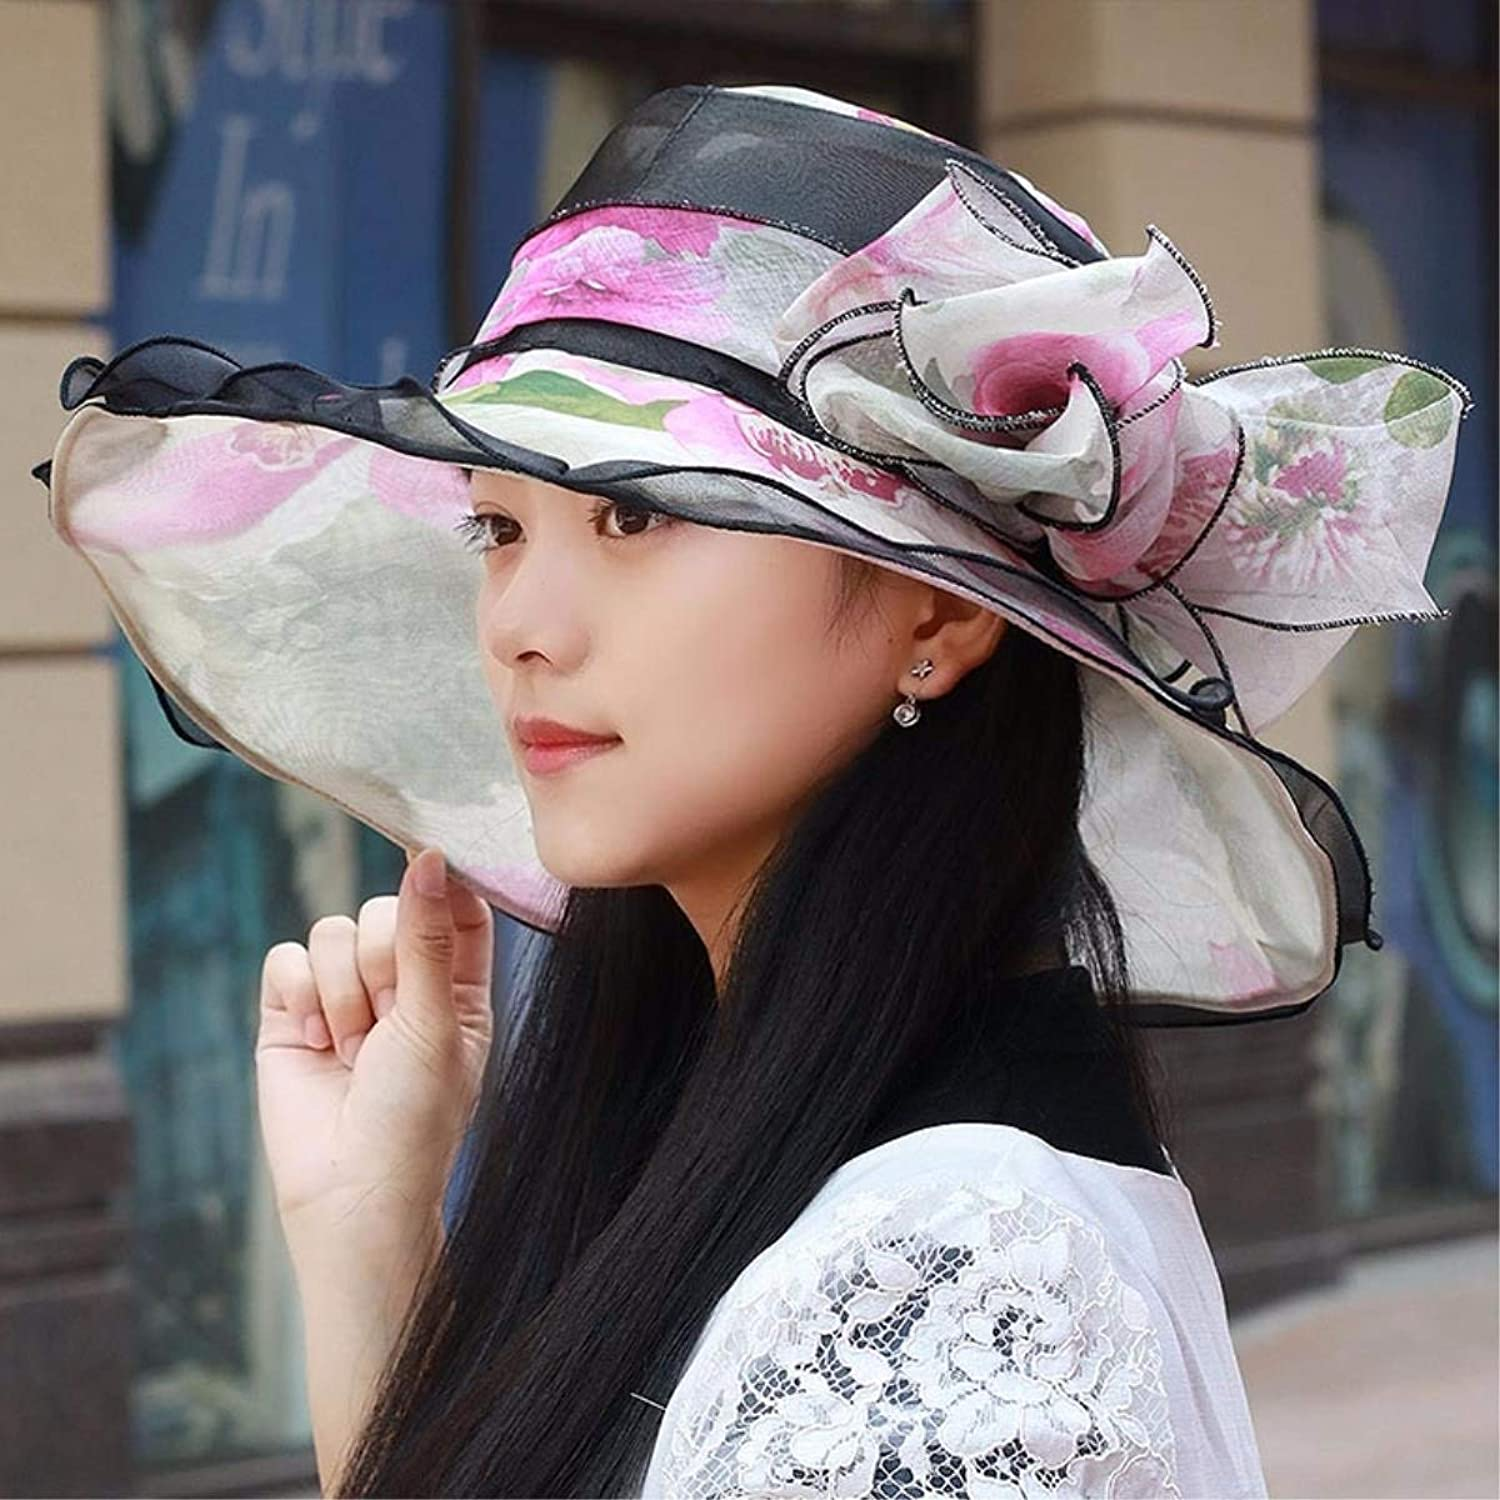 Chuiqingnet The new big lotus leaves along the edge of the Visor snow spinning outdoor sun cap visor sun hat female summer cool Cap (color   Pink, Size   M)